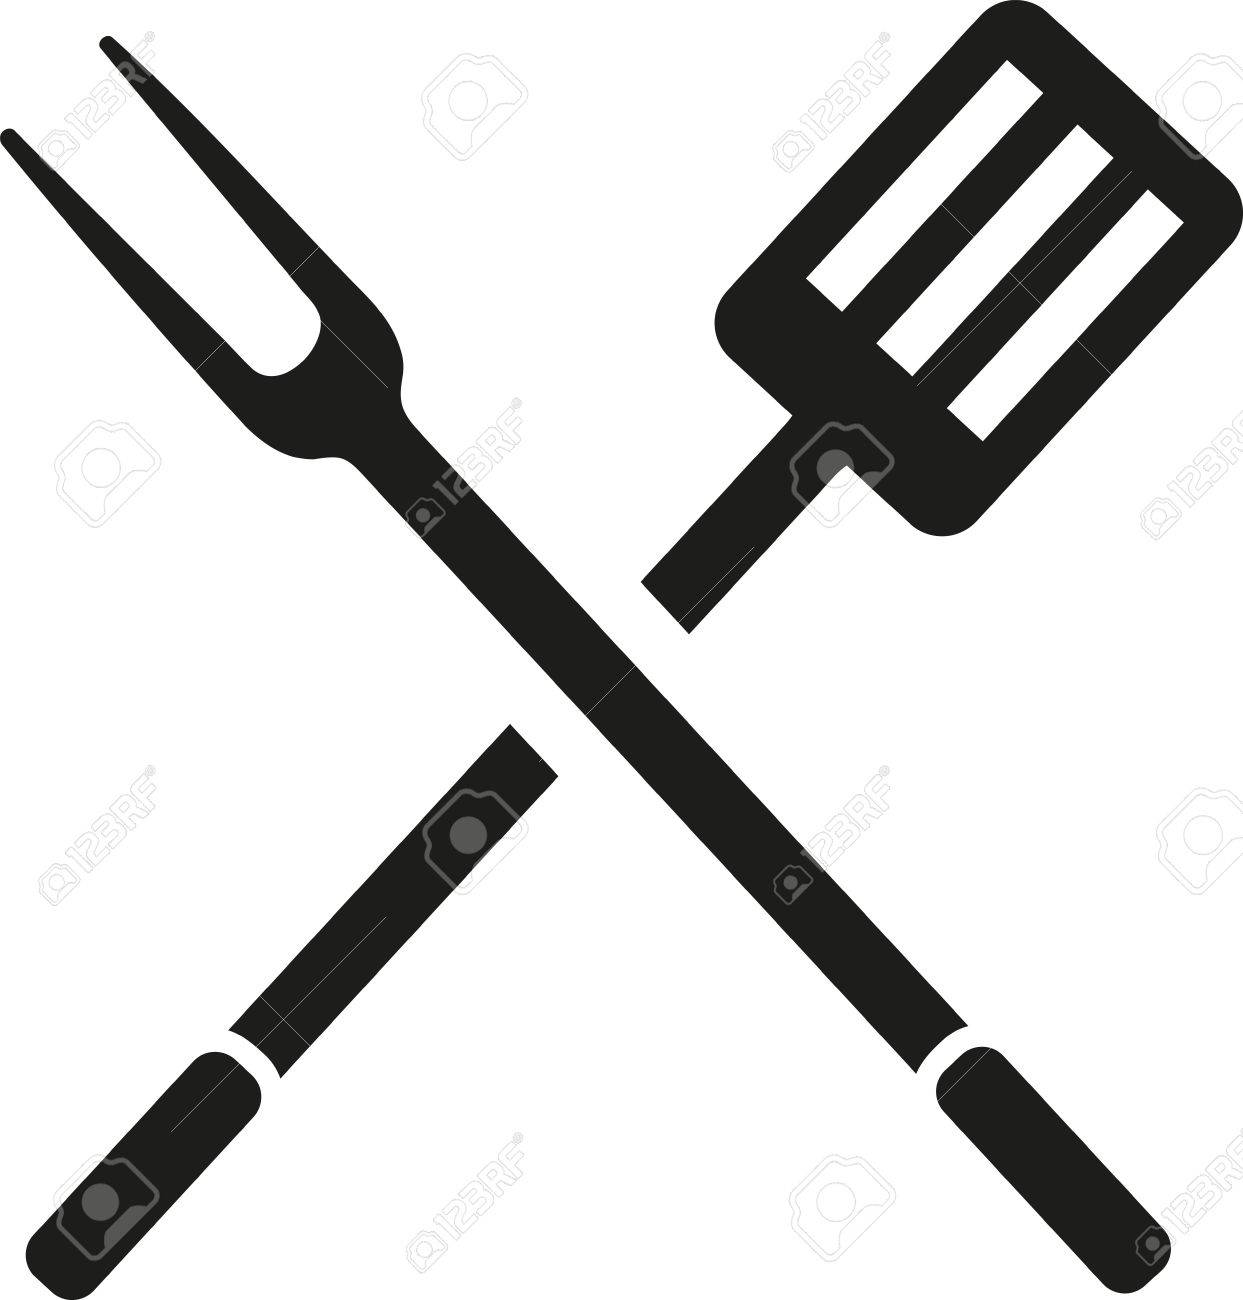 2428 Fork free clipart.